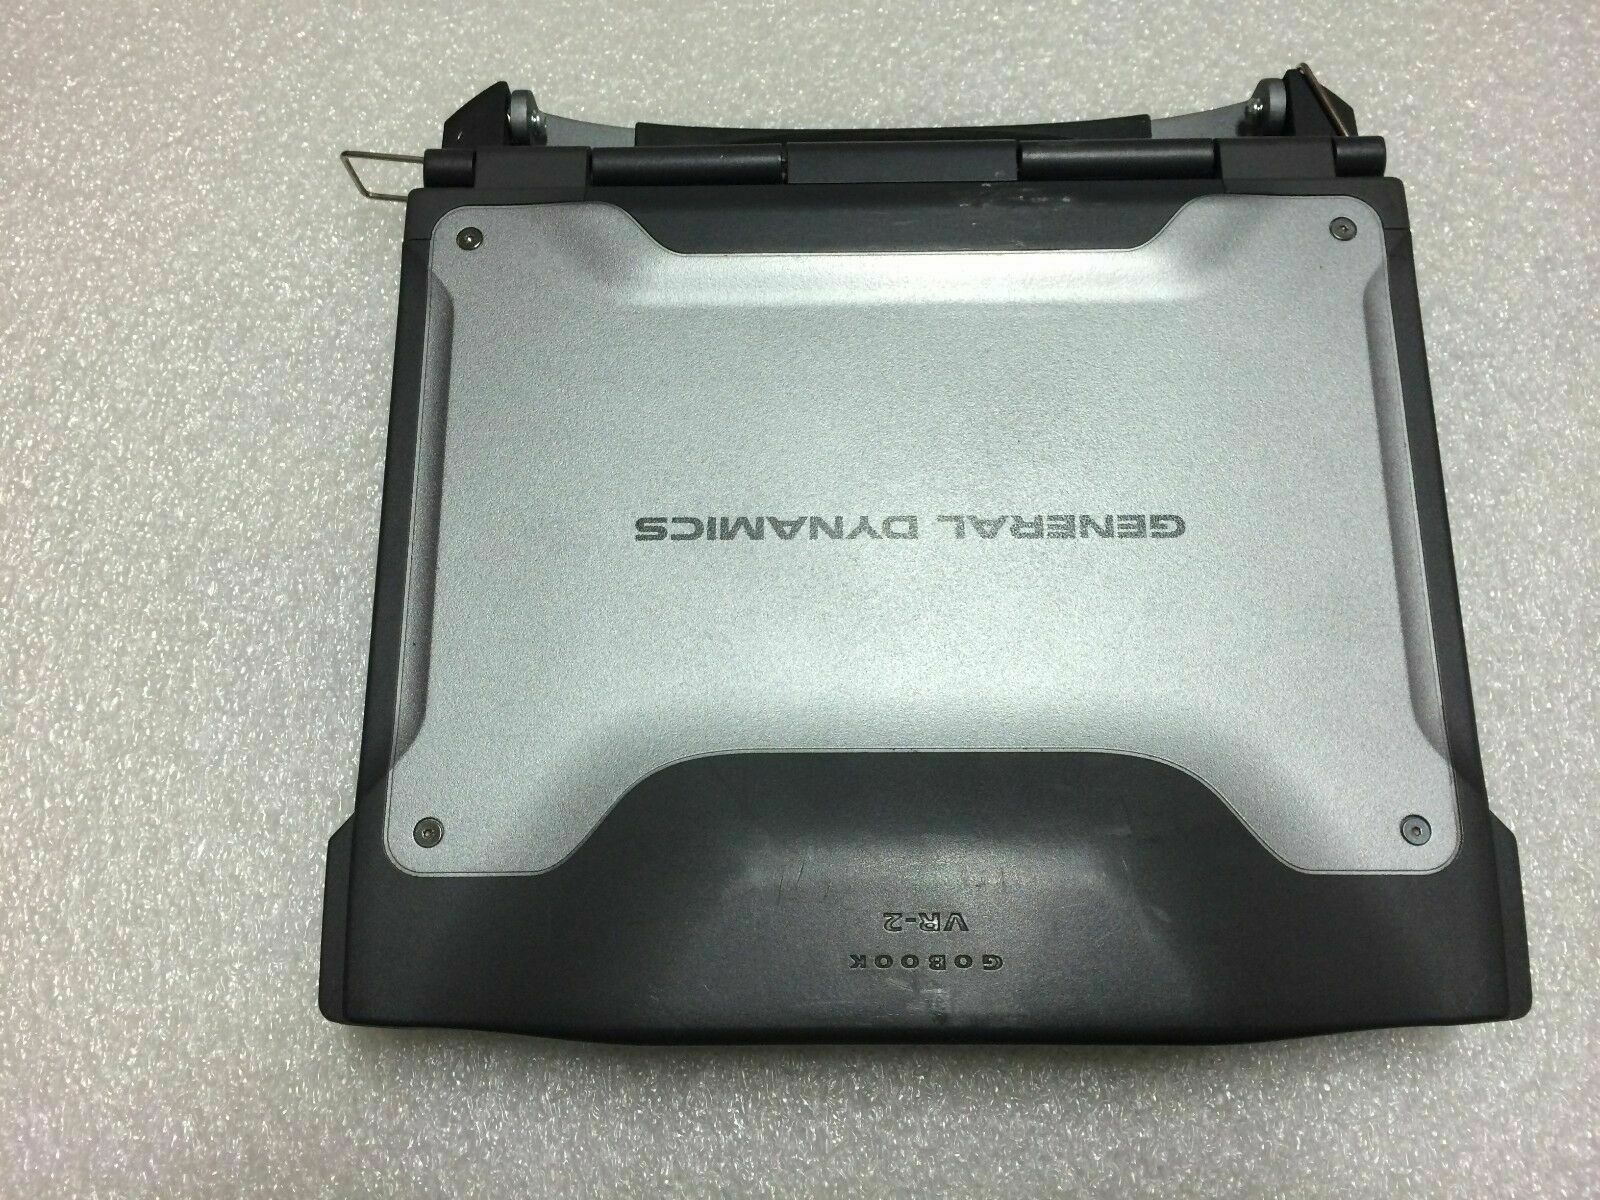 ITRONIX GD6000 2.53GHZ 4GB TOUGHBOOK LAPTOP 128GB SSD GENERAL DYNAMICS OFFICE